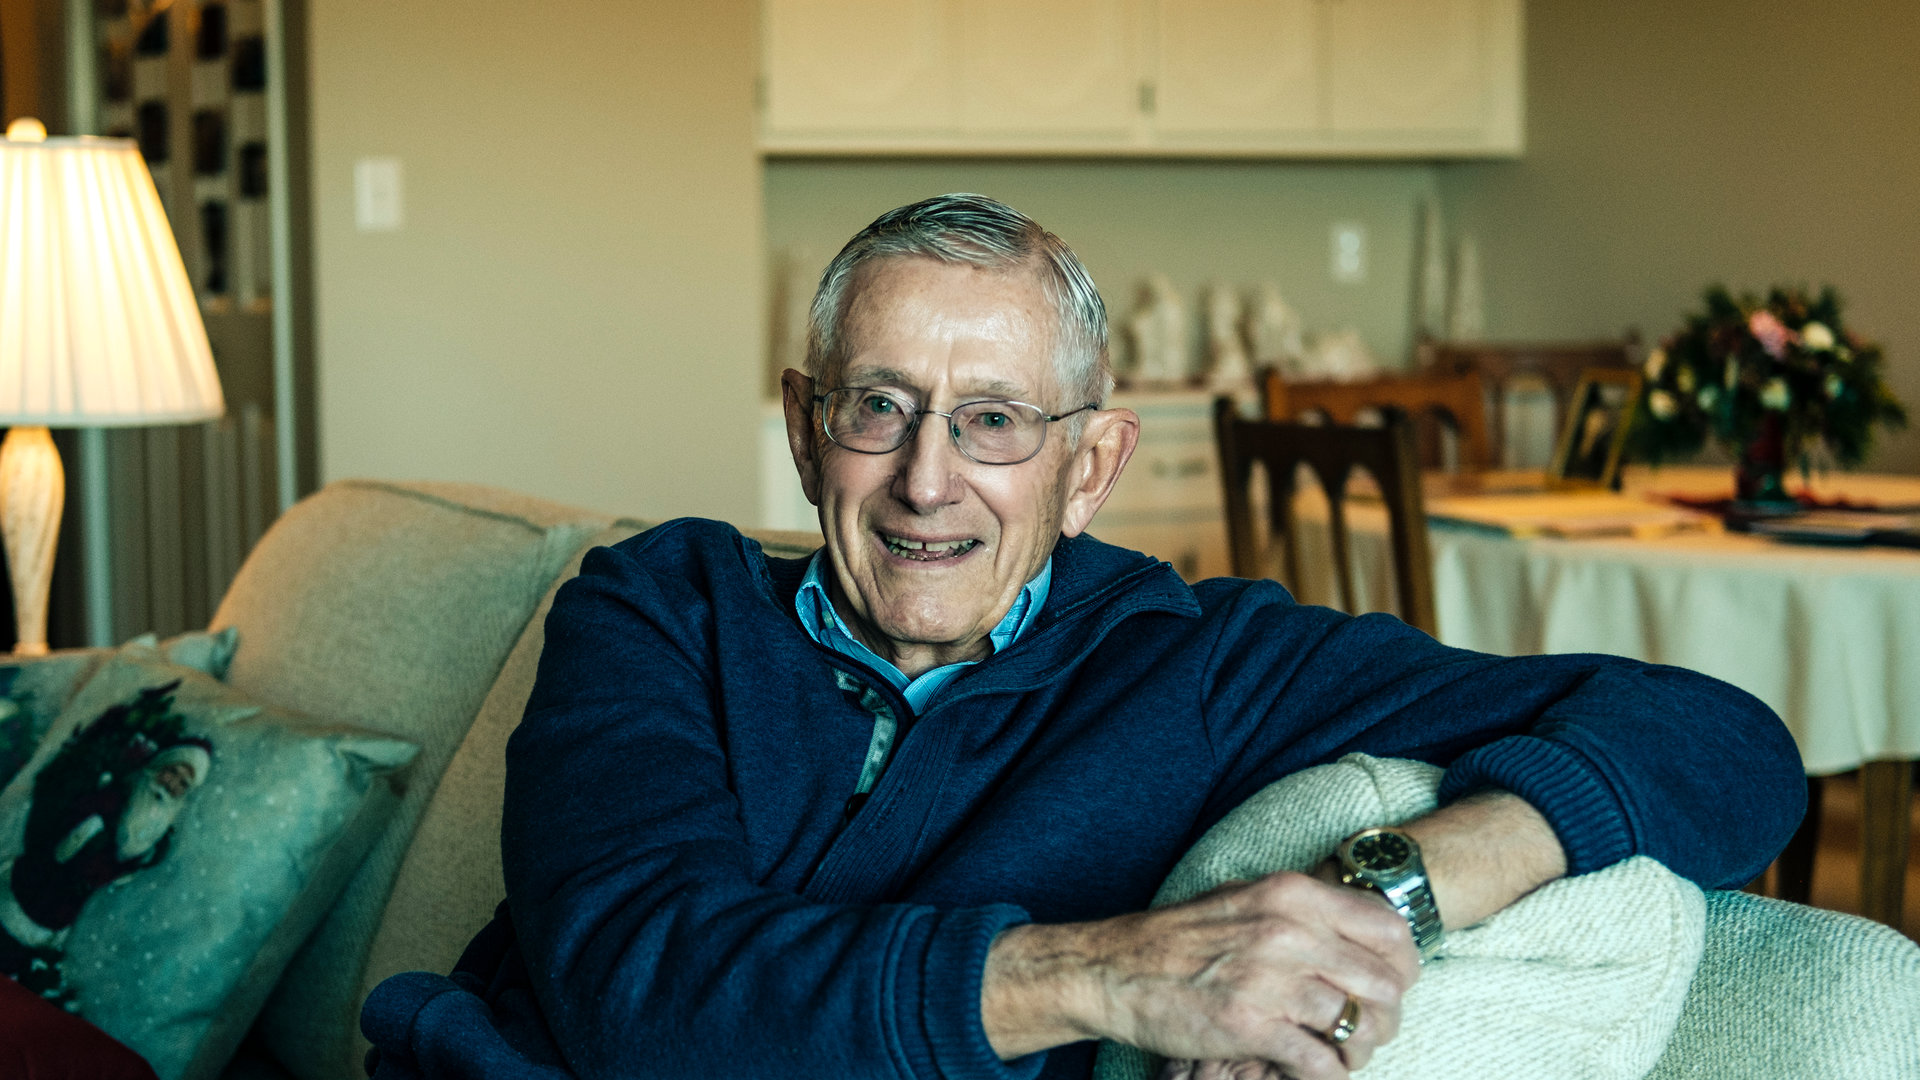 Dr. Wayne Thalhuber '60 (biology) poses for a portrait in his Mendota Heights home December 20, 2016. Thalhuber is the recipient of the 2017 St. Thomas Day Humanitarian Award.